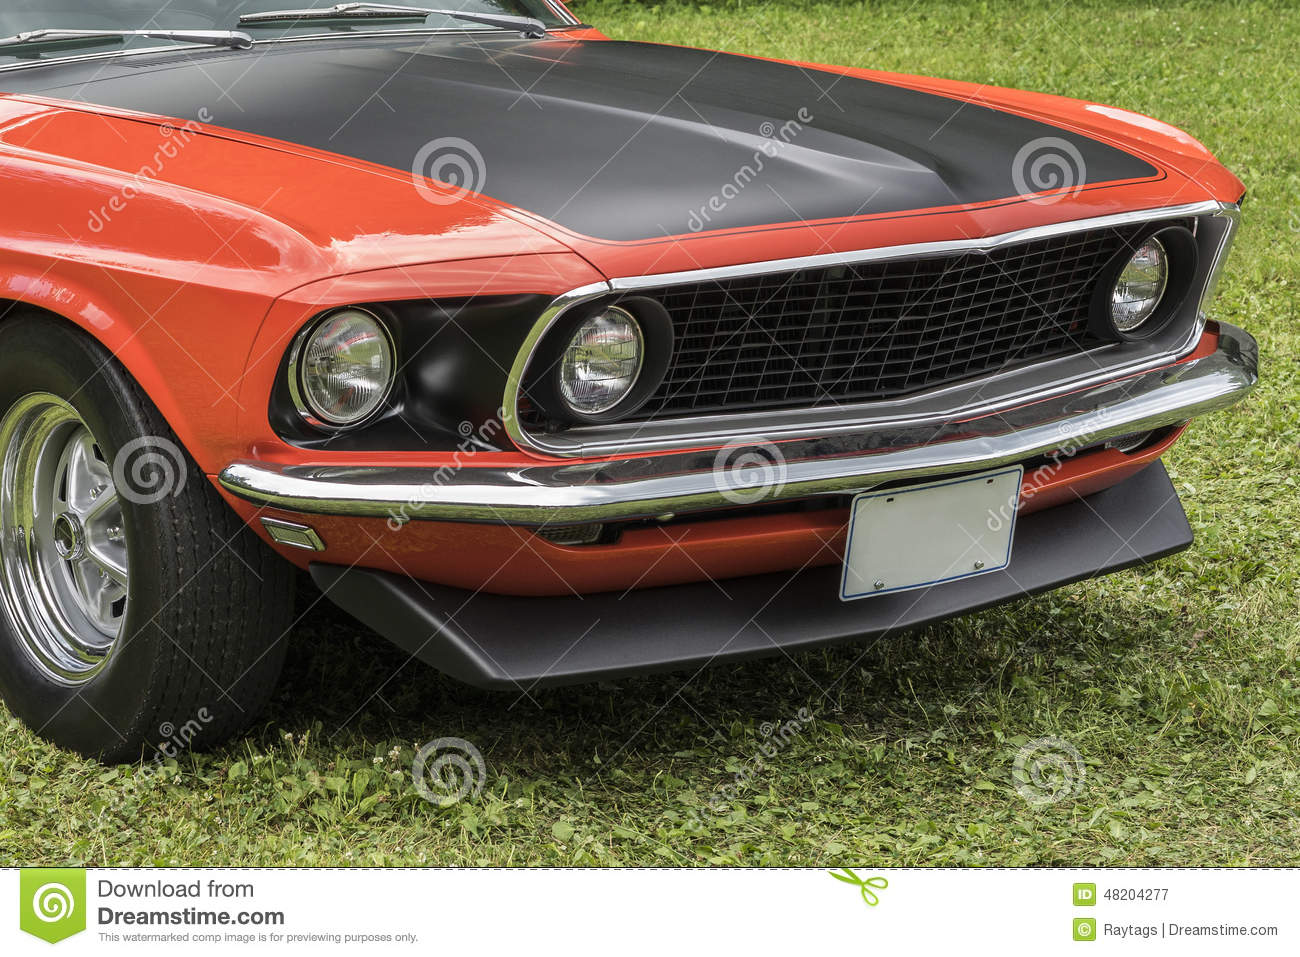 mustang front end stock image. image of front, collage - 48204277